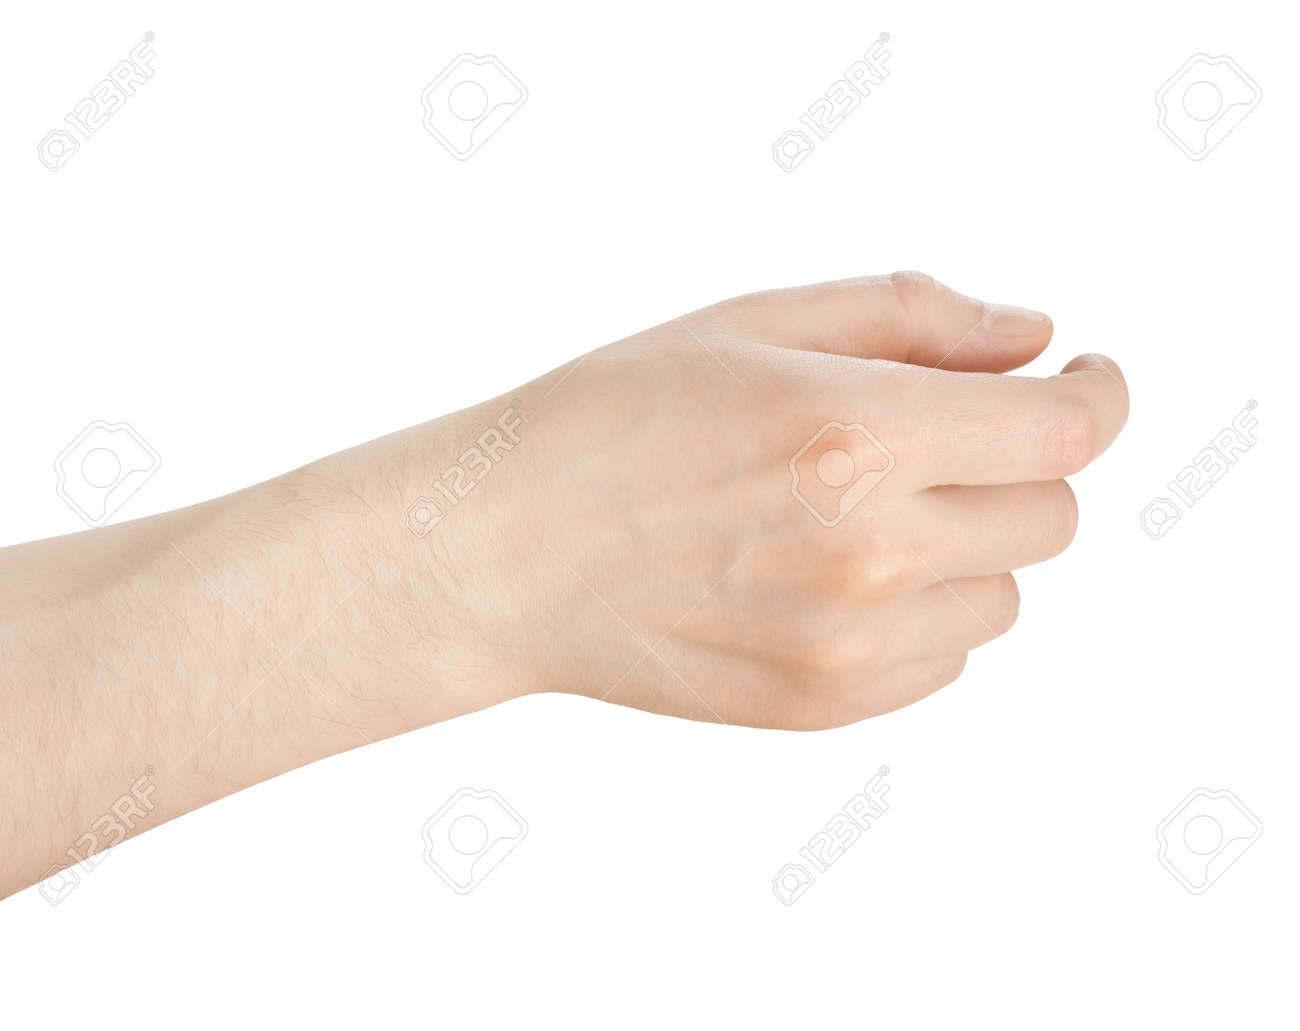 hand hold something on a white background - 18784466